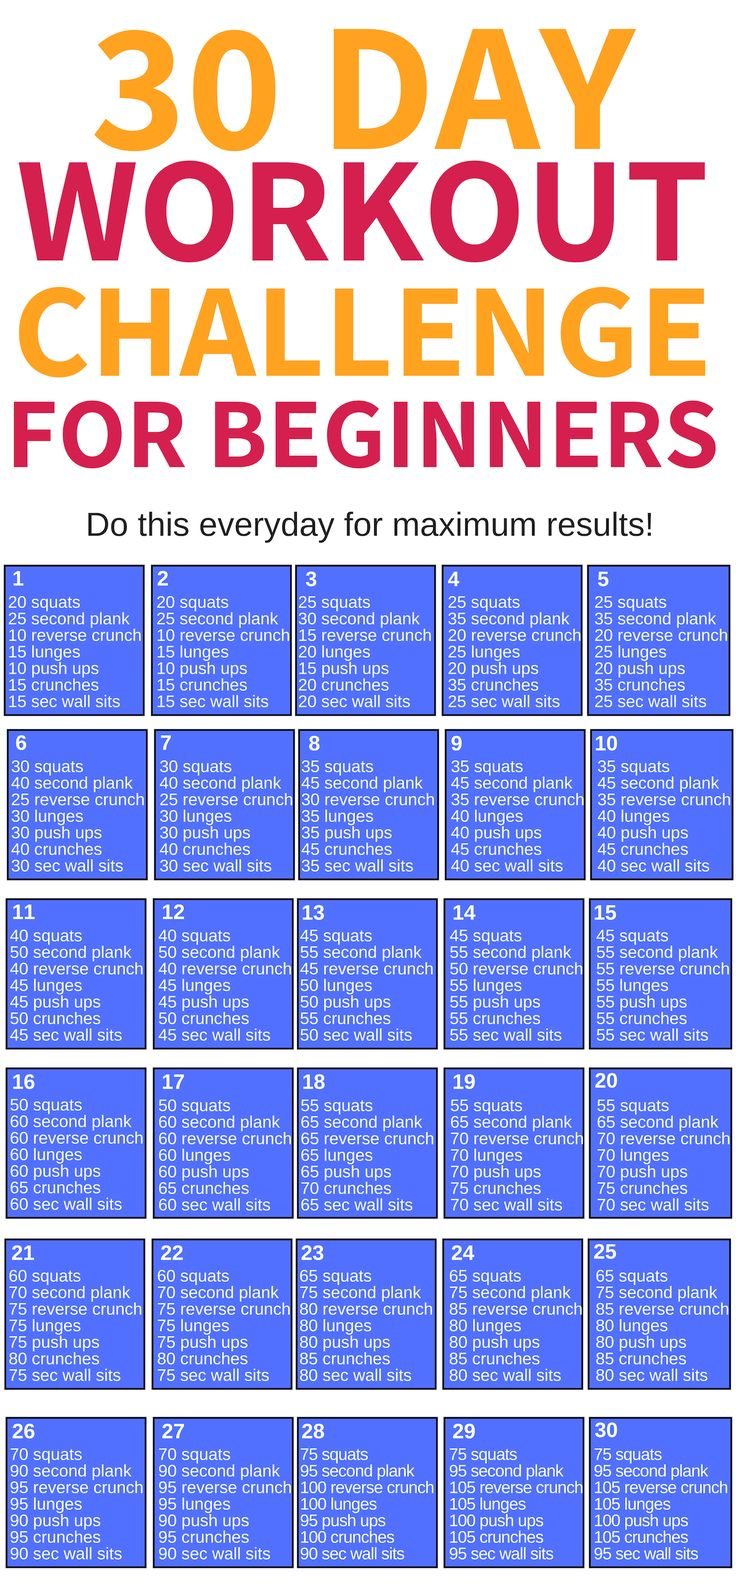 This 30 day workout challenge for beginners is THE BEST! I'm so glad I found thi…